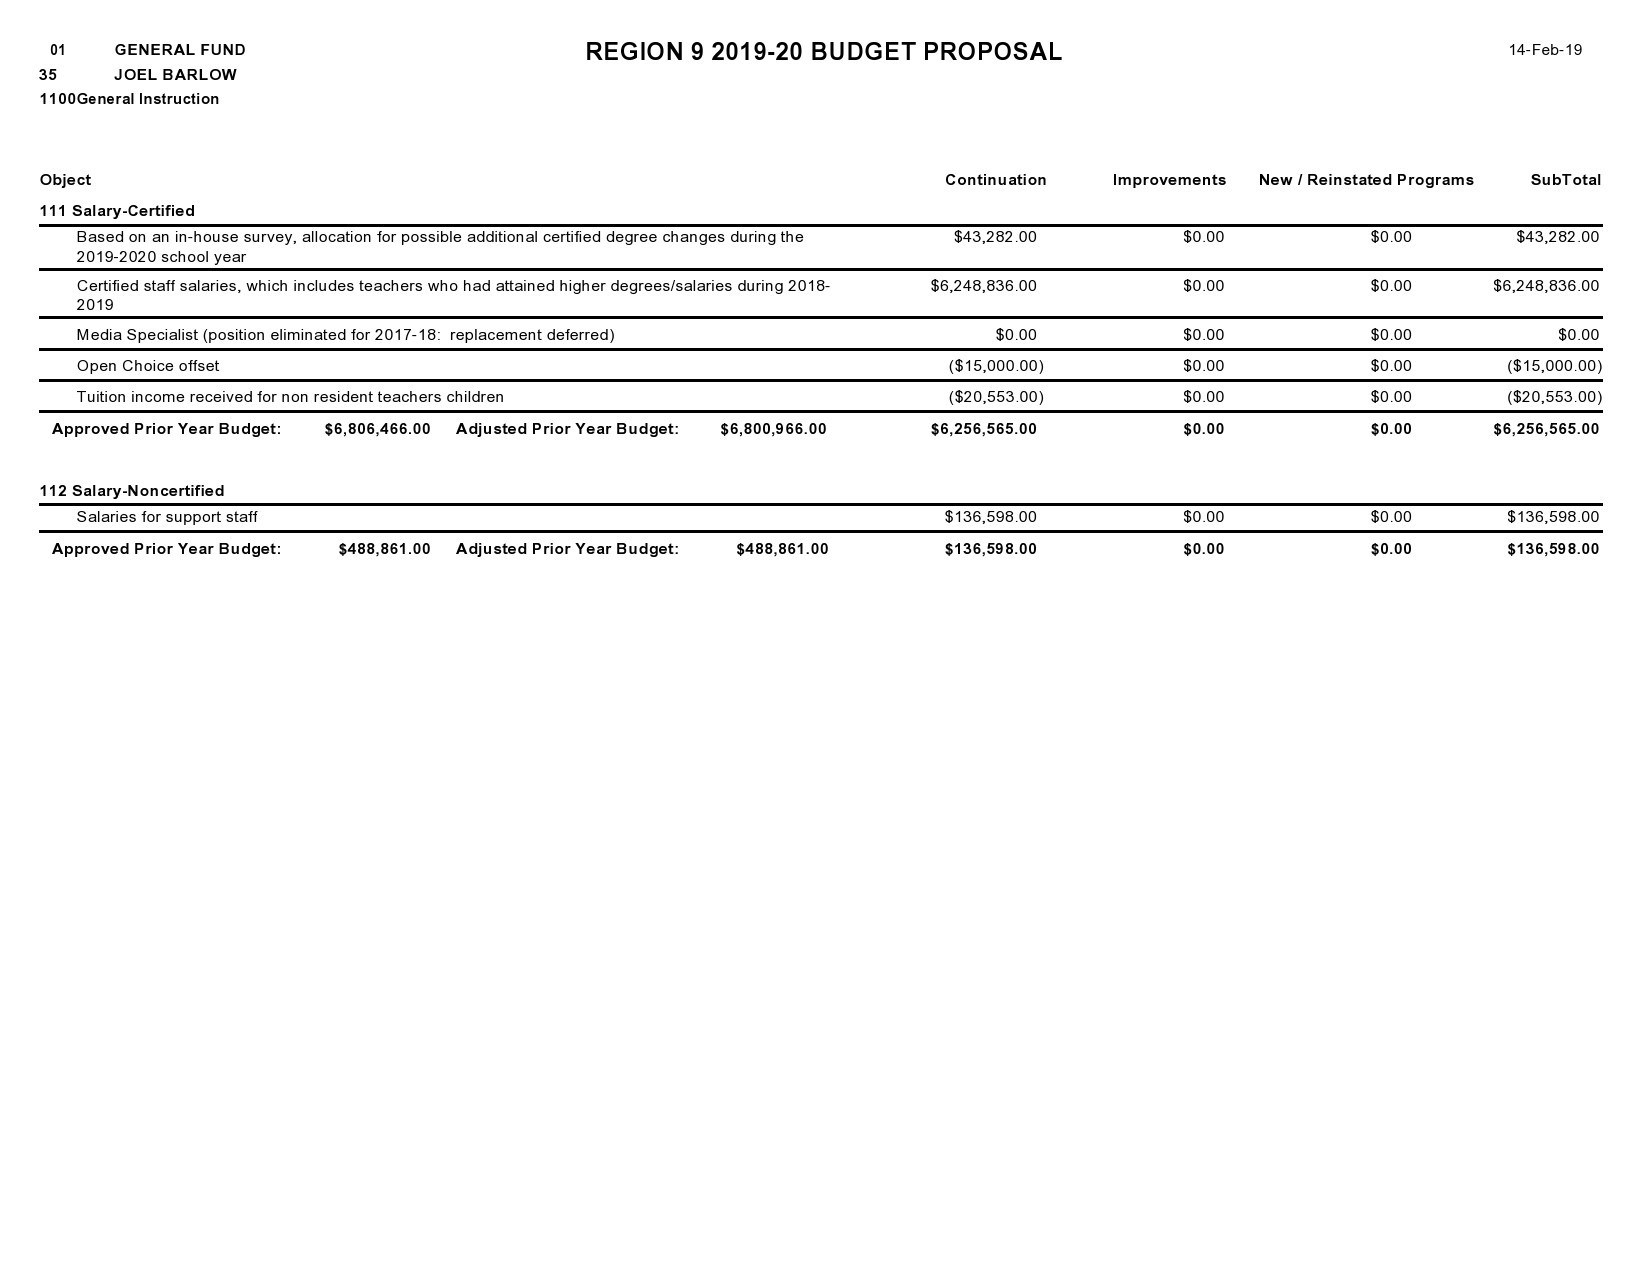 Free budget proposal template 34